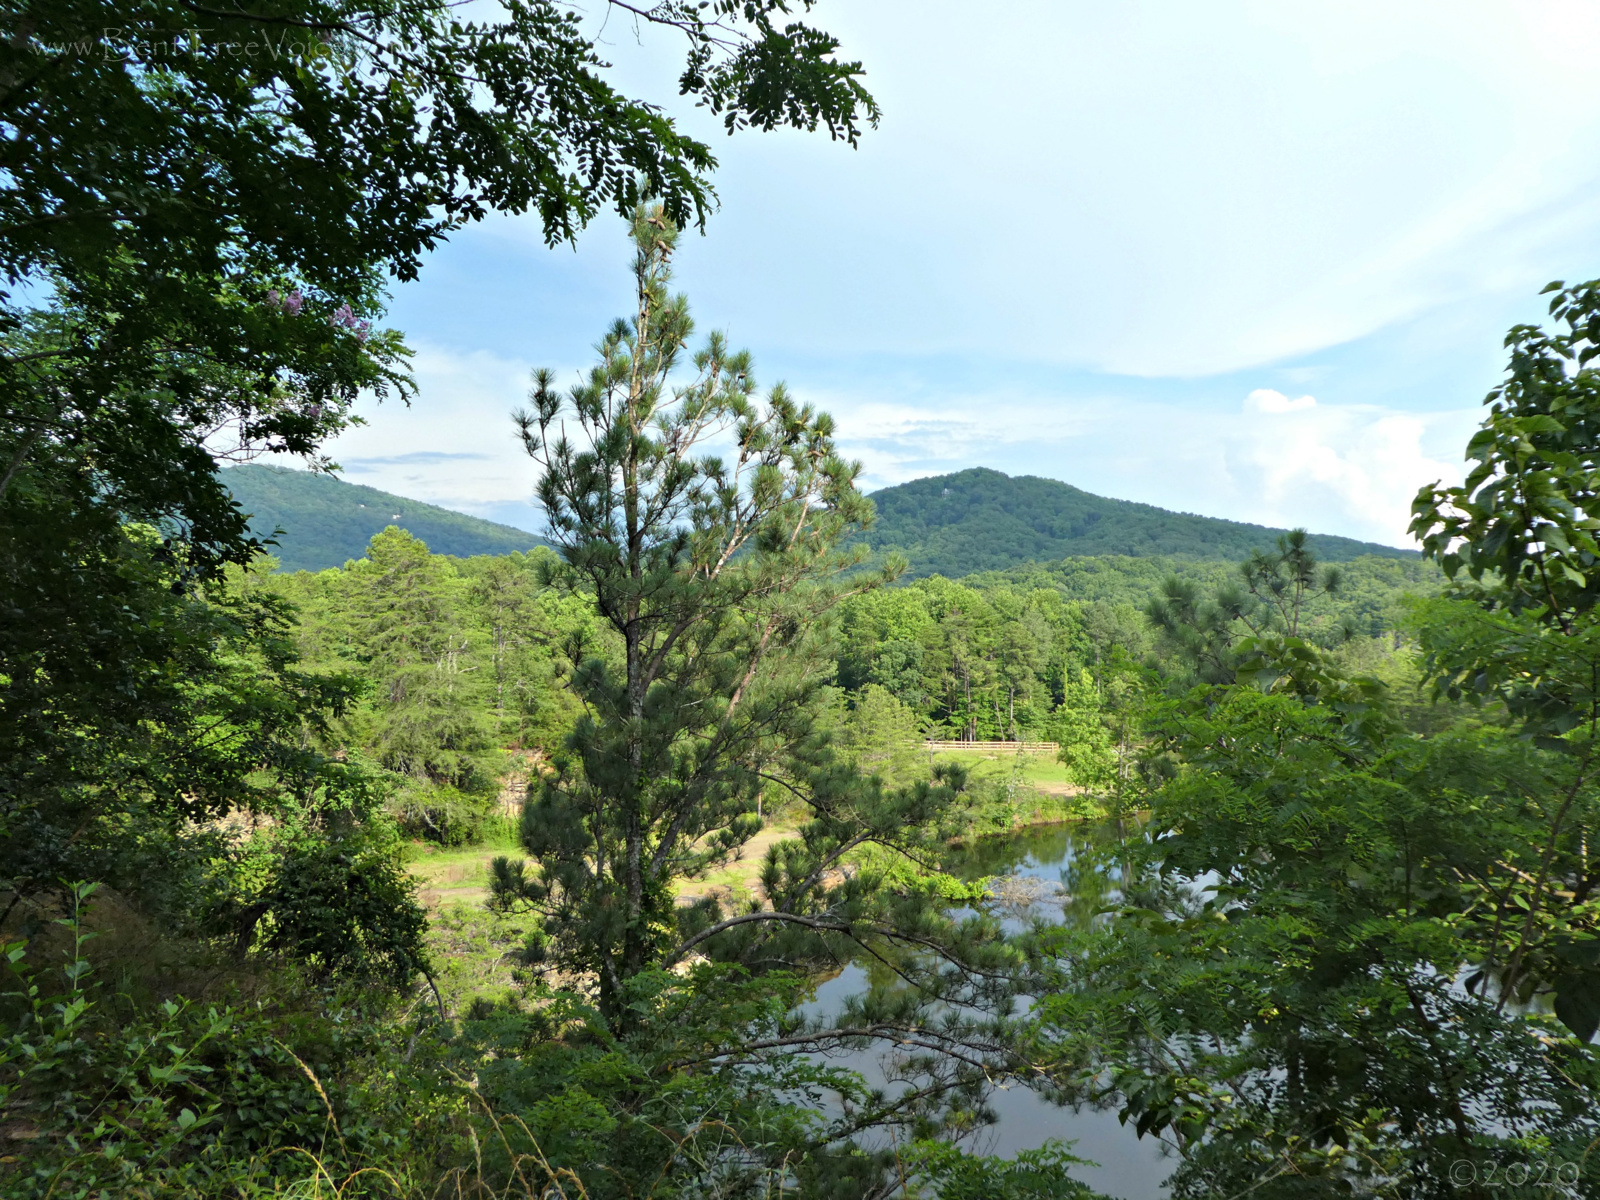 June 22, 2020 - View of the quarry pond from the Saddle Club Horse Park swing